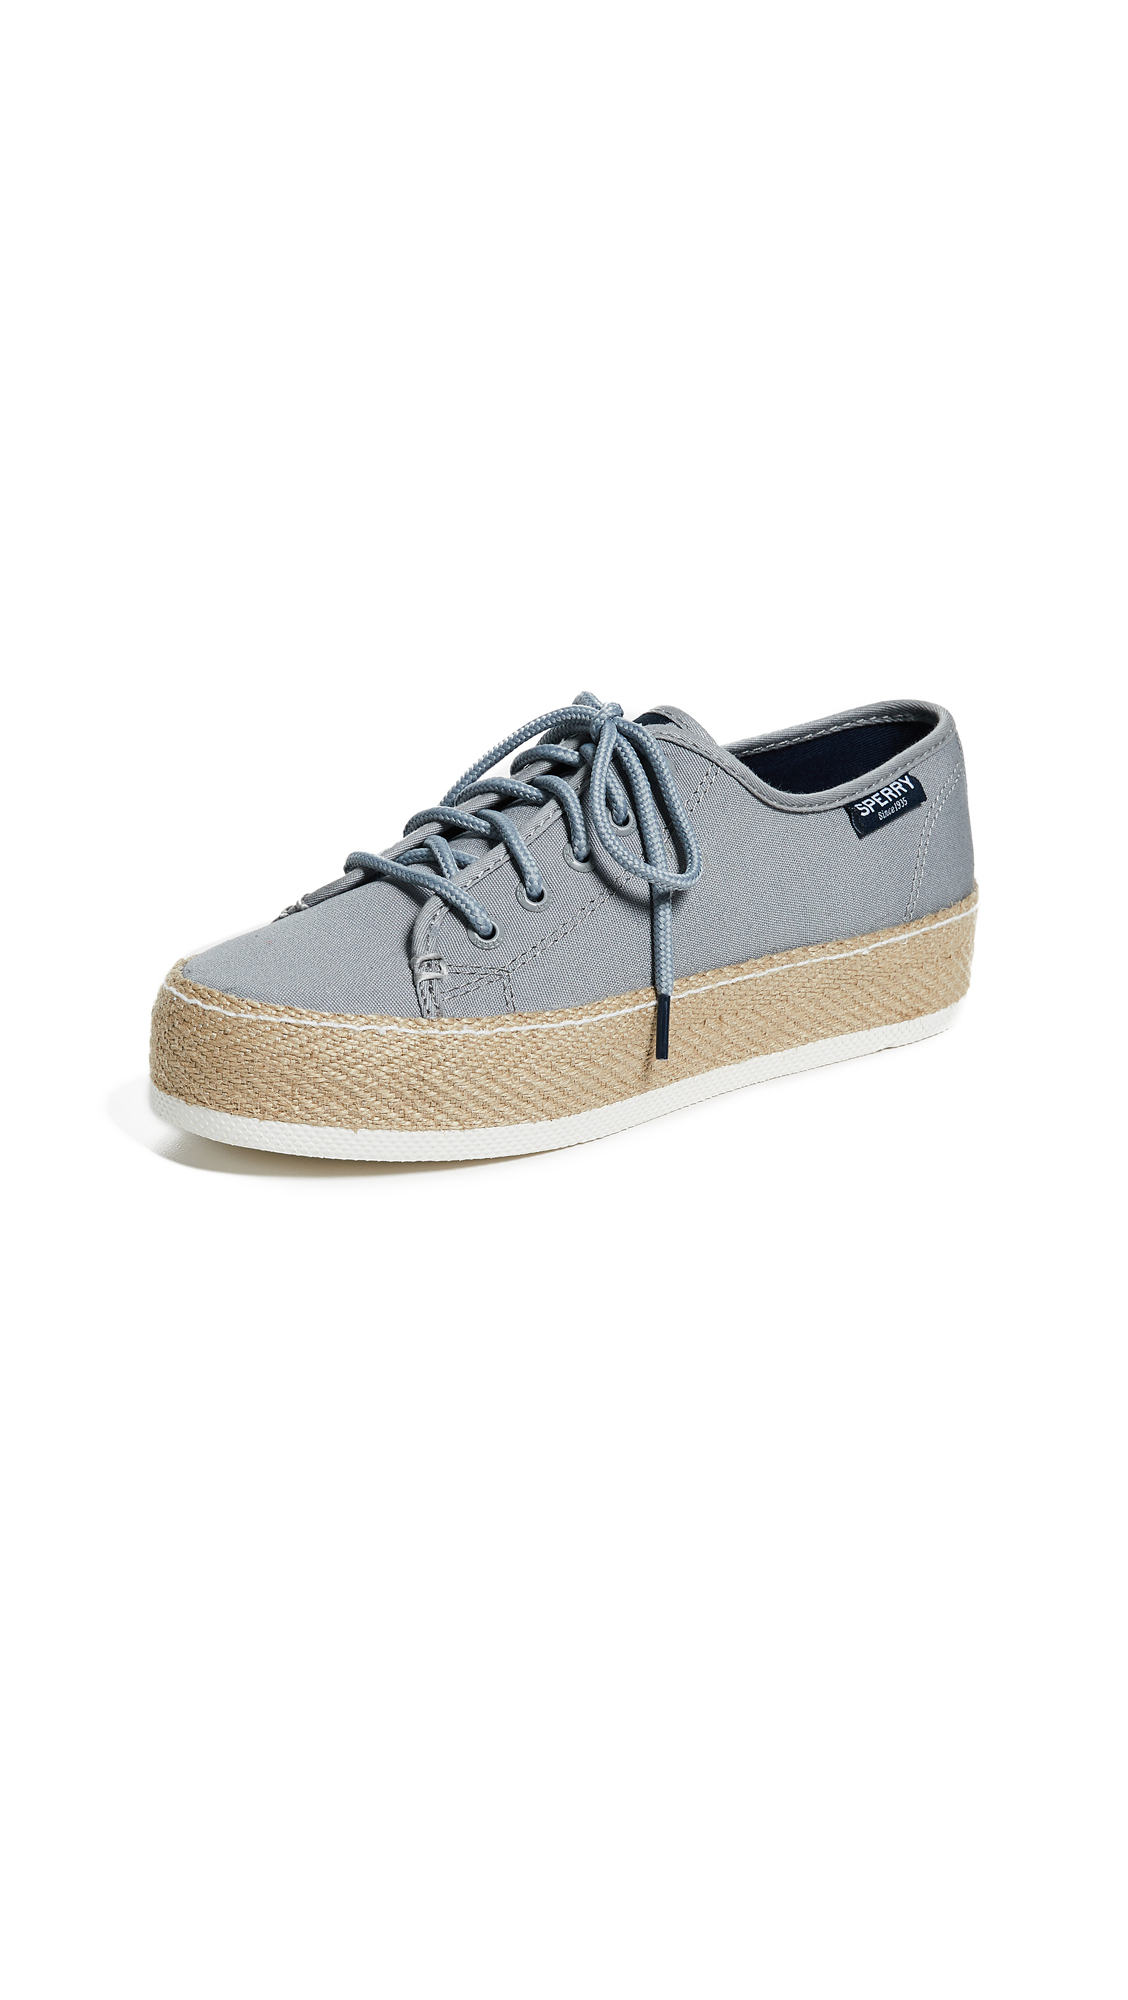 Sperry Sky Sail Jute Wrap Platform Sneakers - Grey